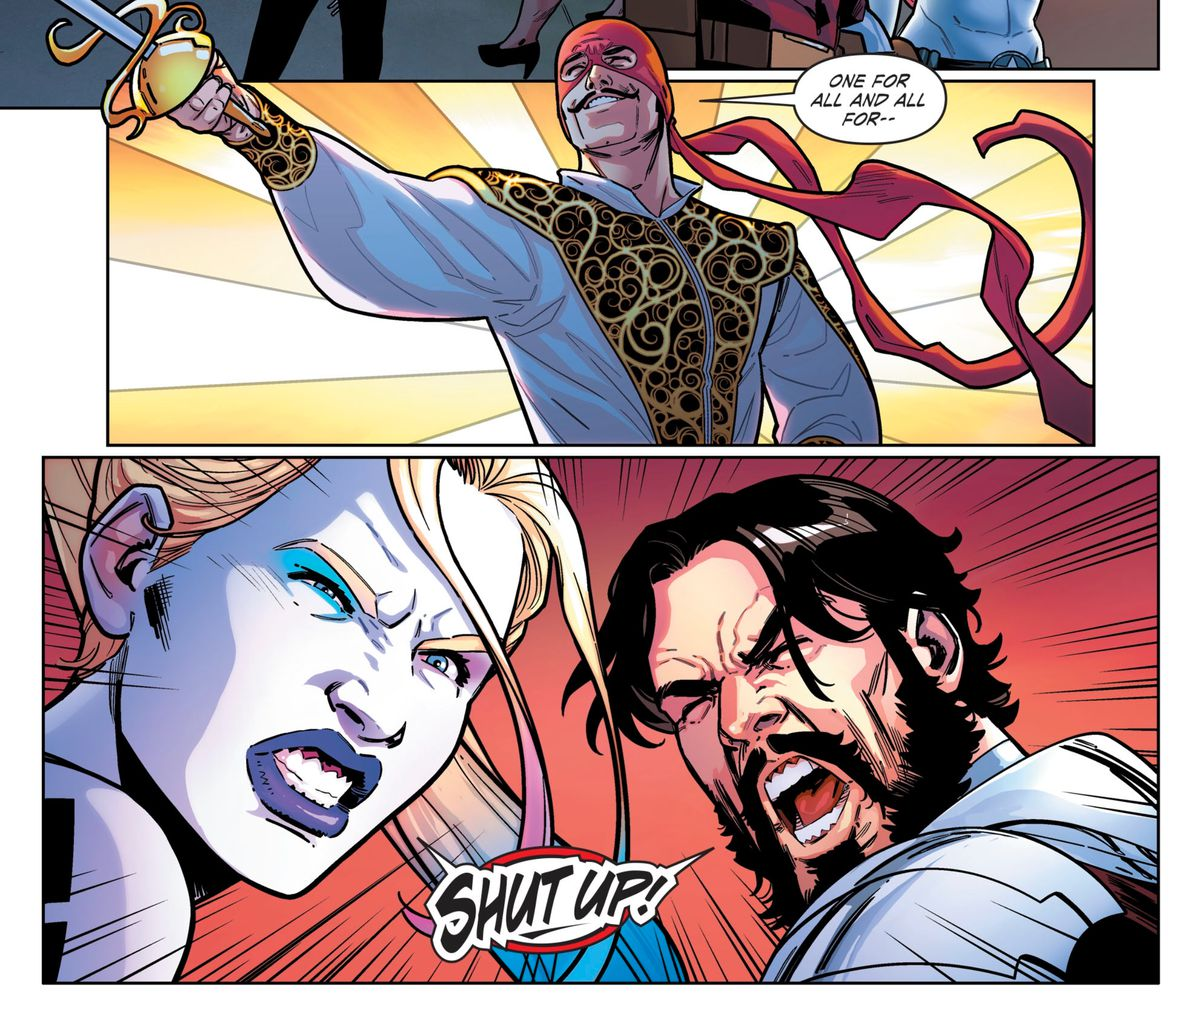 """Cavalier flourishes his saber and cries """"One for all and all for—"""" until he is interrupted by Harley Quinn and Deadshot yelling """"SHUT UP!"""" in Suicide Squad #1, DC Comics (2019)."""